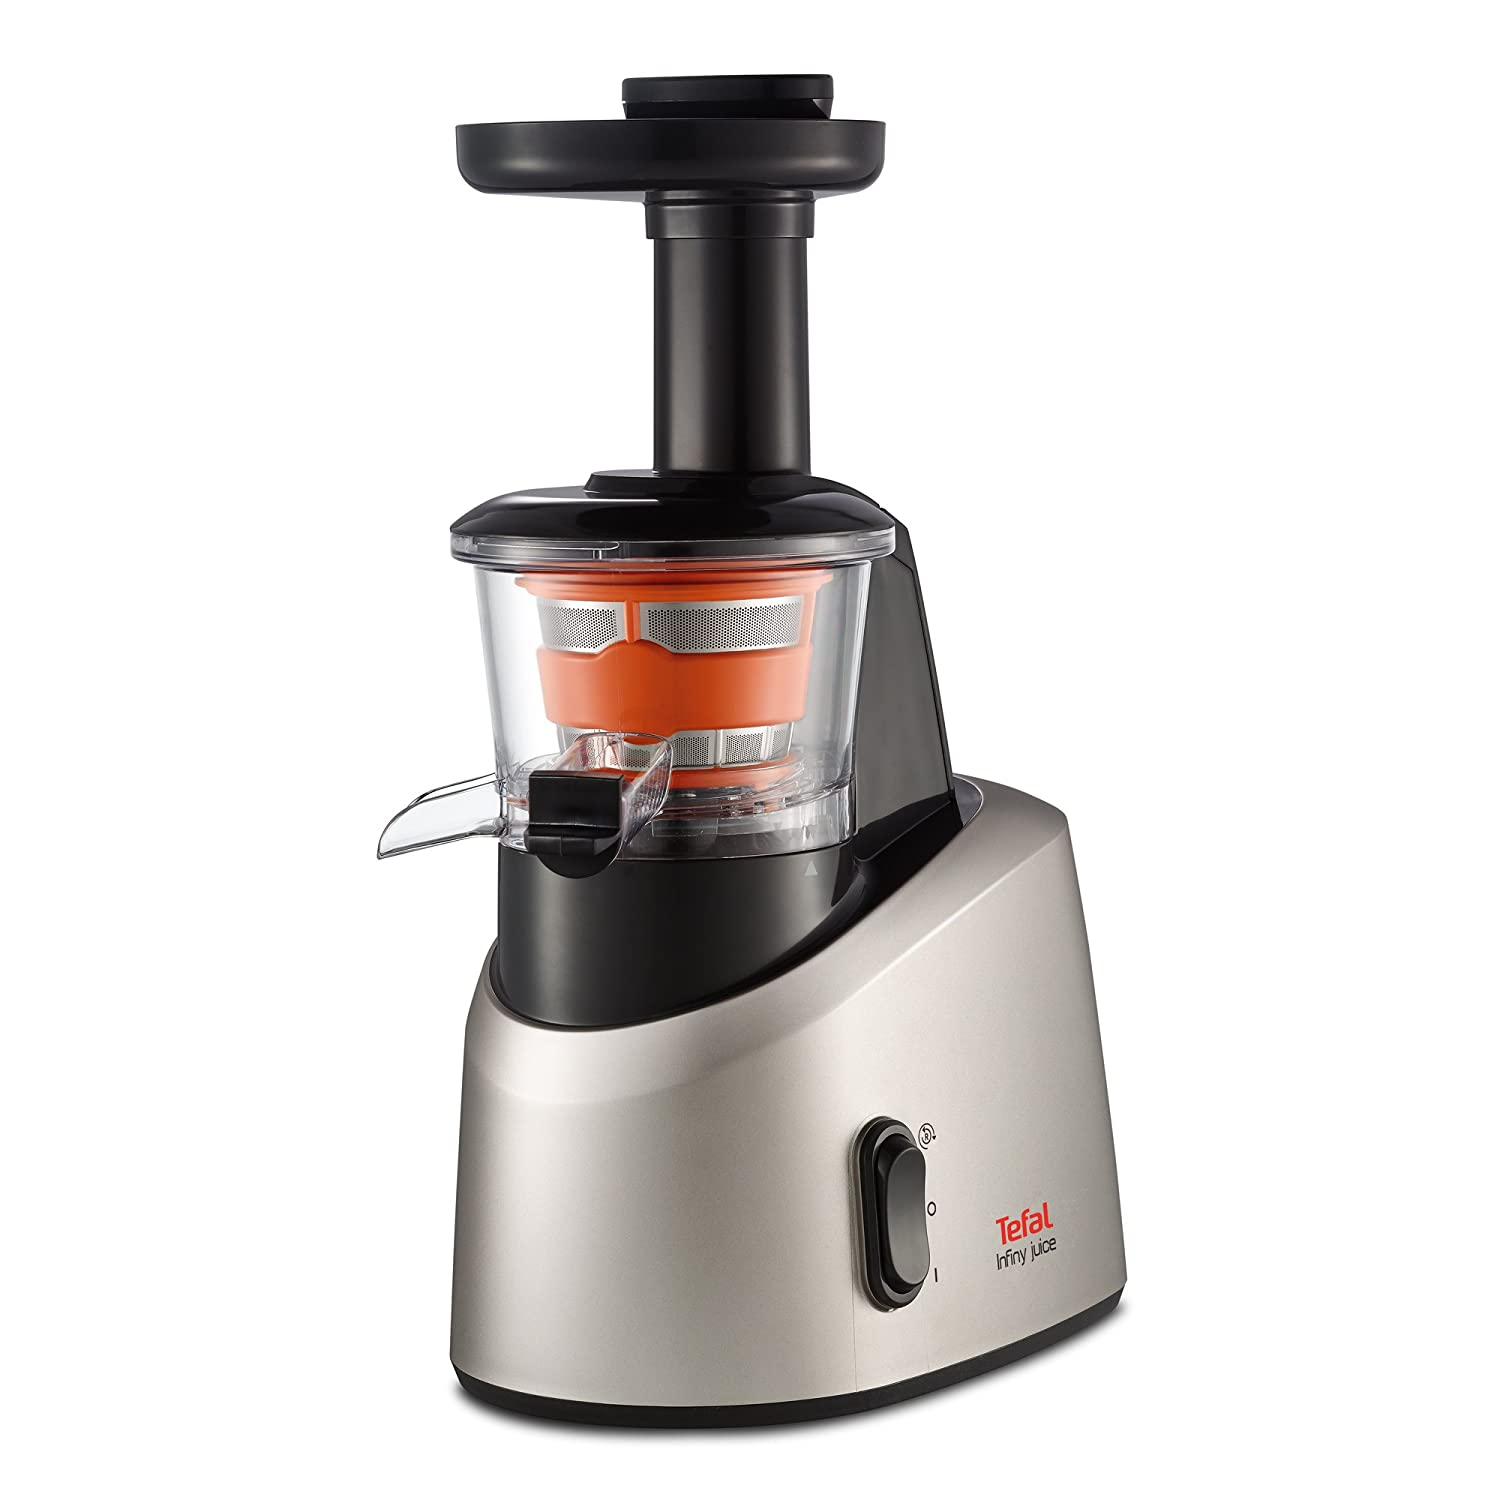 Tefal Stainless Steel and Plastic Infiny